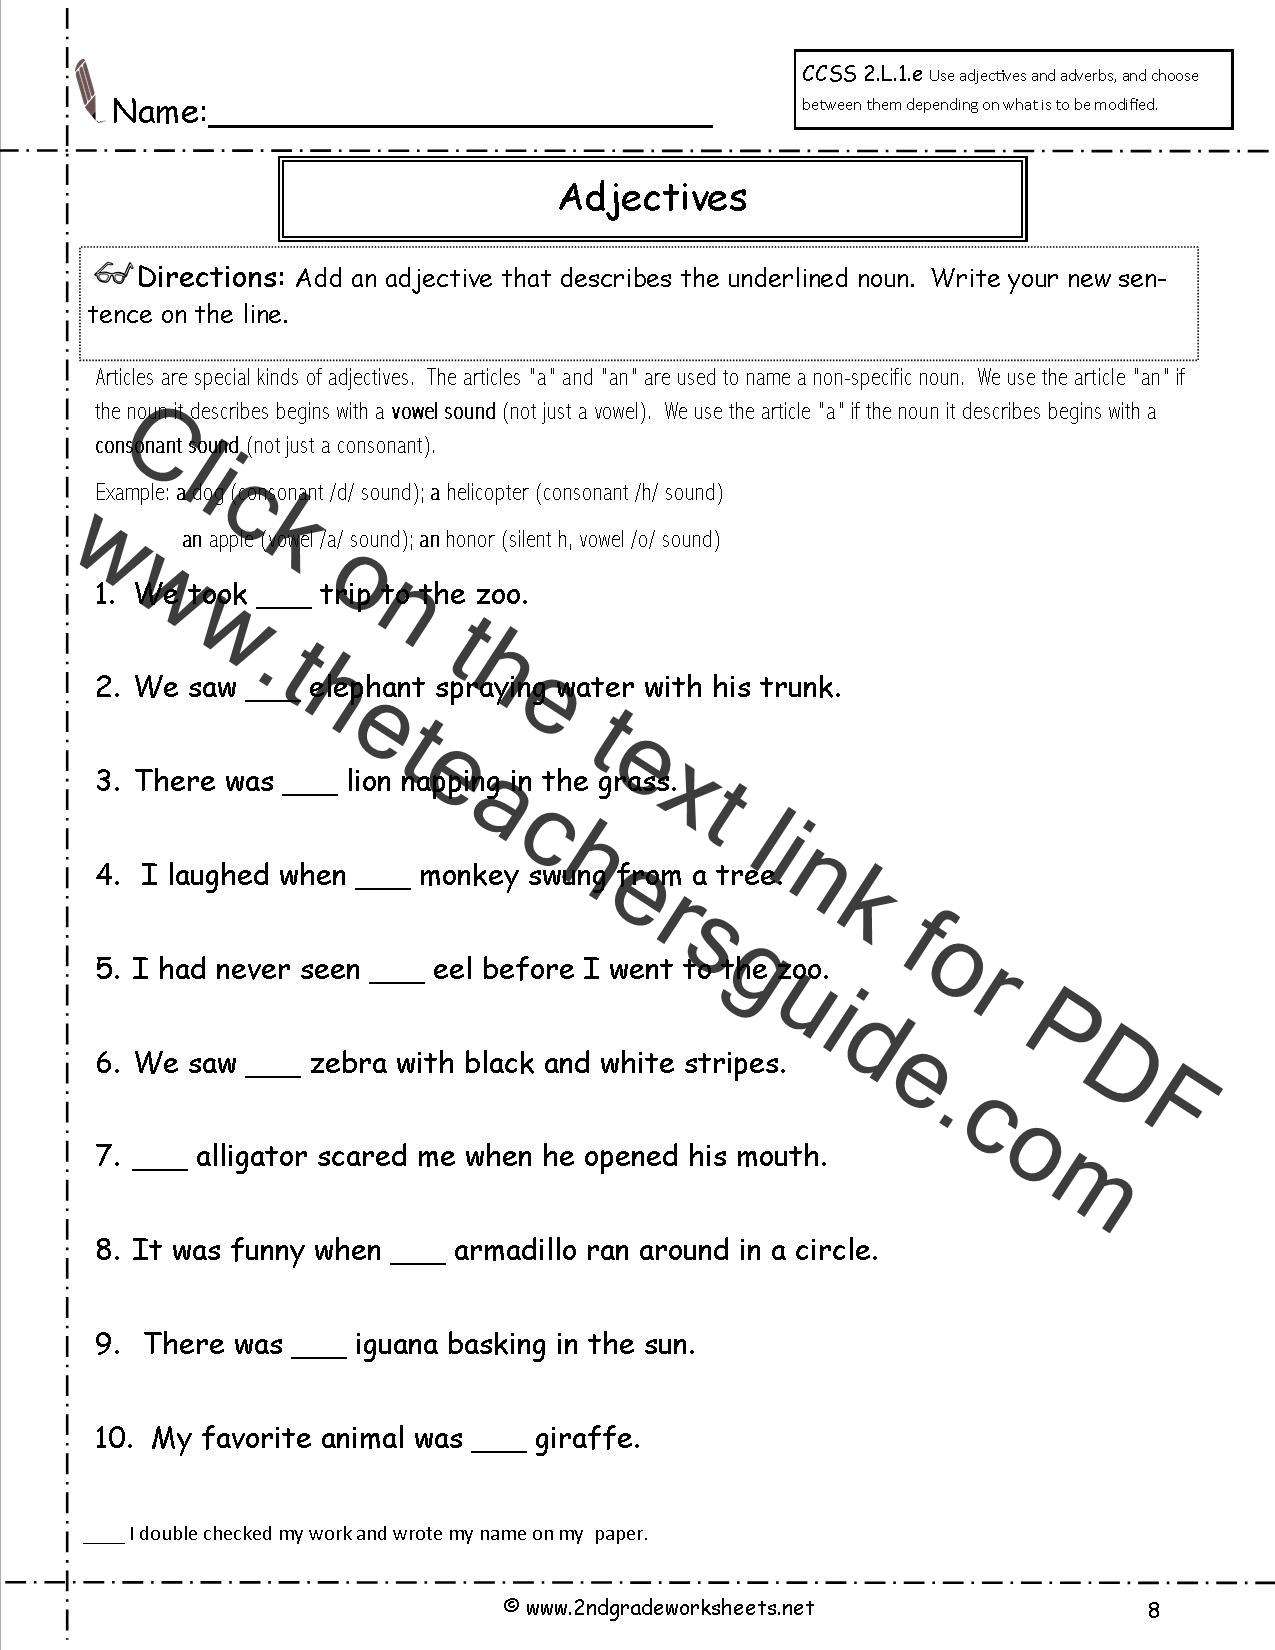 Worksheet Worksheets On English Grammar free languagegrammar worksheets and printouts adjectives worksheets